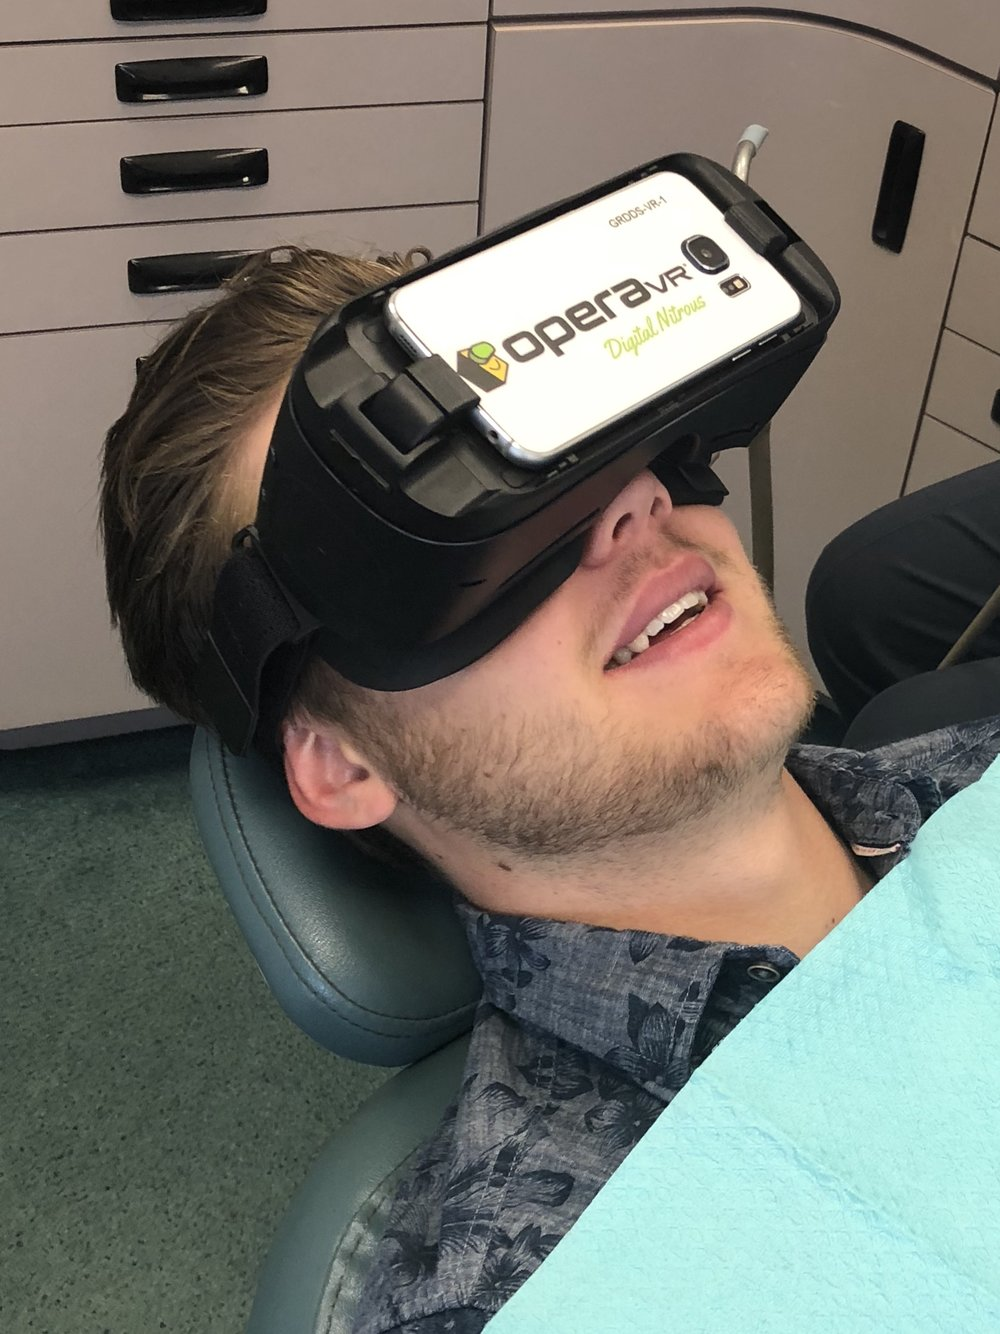 """""""It gave me something peaceful to concentrate on, instead of the procedure that I was having done, which made the time go much faster. I really enjoyed it and would highly recommend it to anyone who doesn't like being in the dental chair.""""   -Hunter H."""